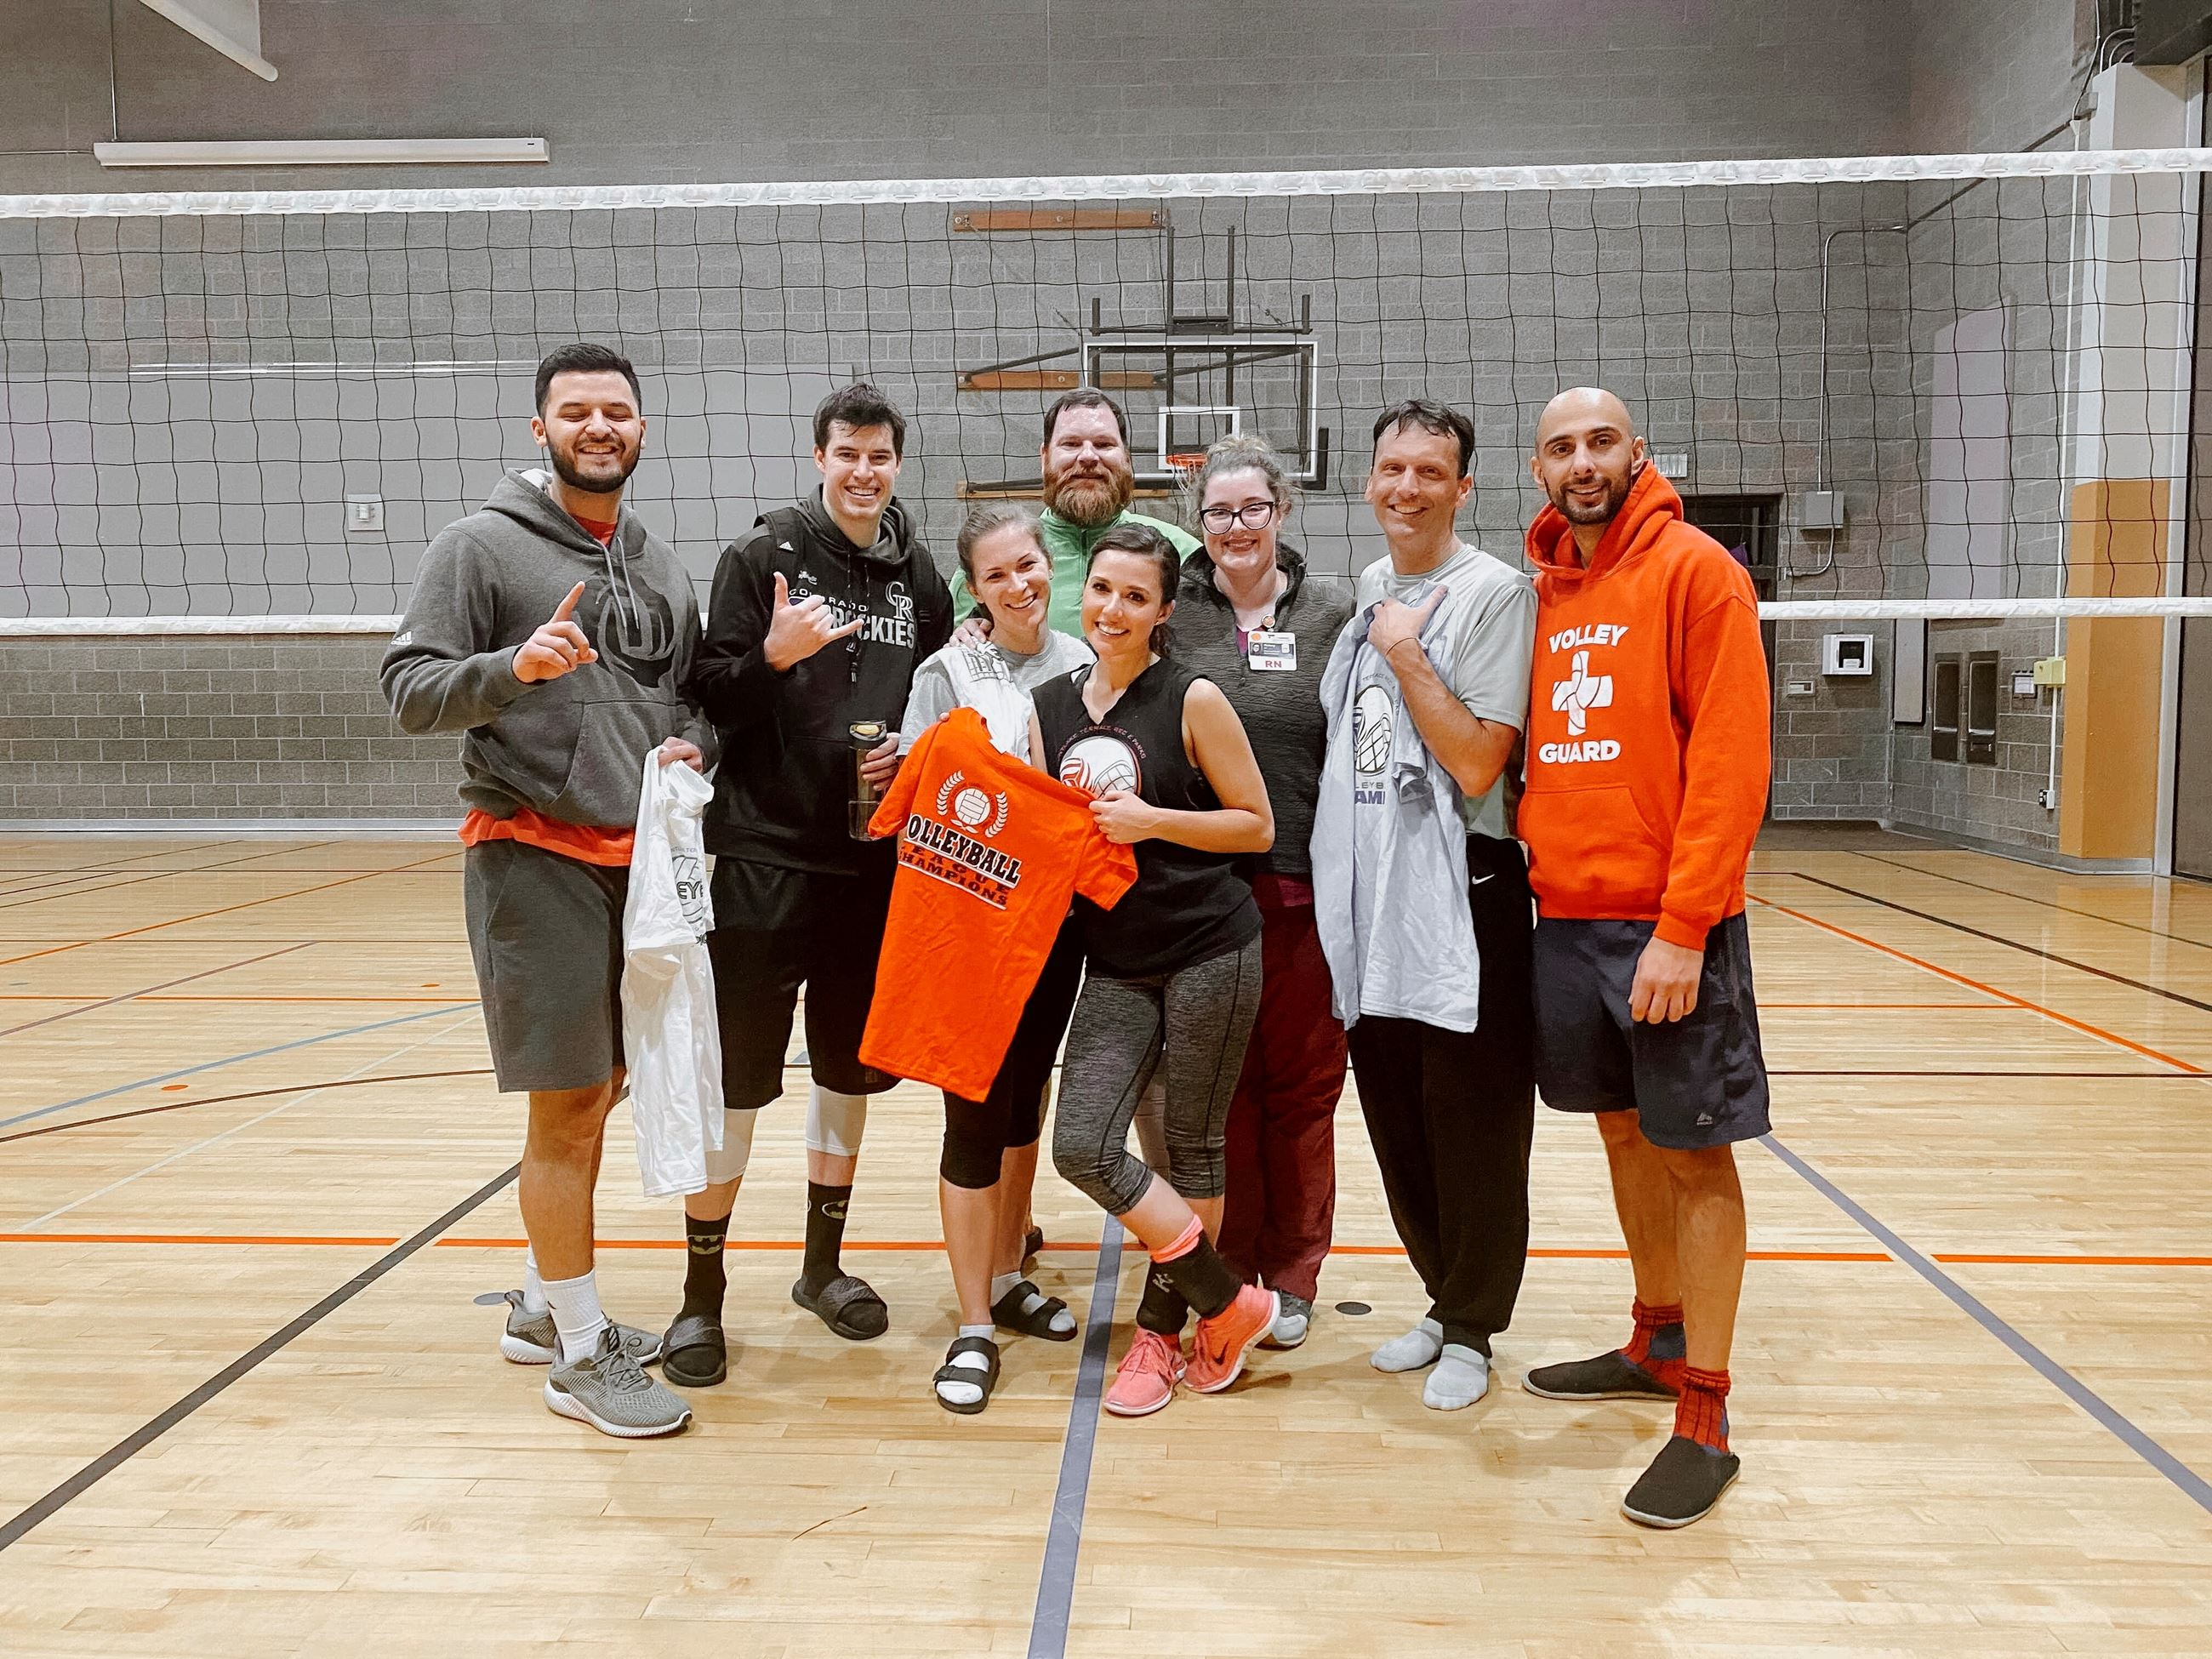 Volleyball Leage Champs Winter 18